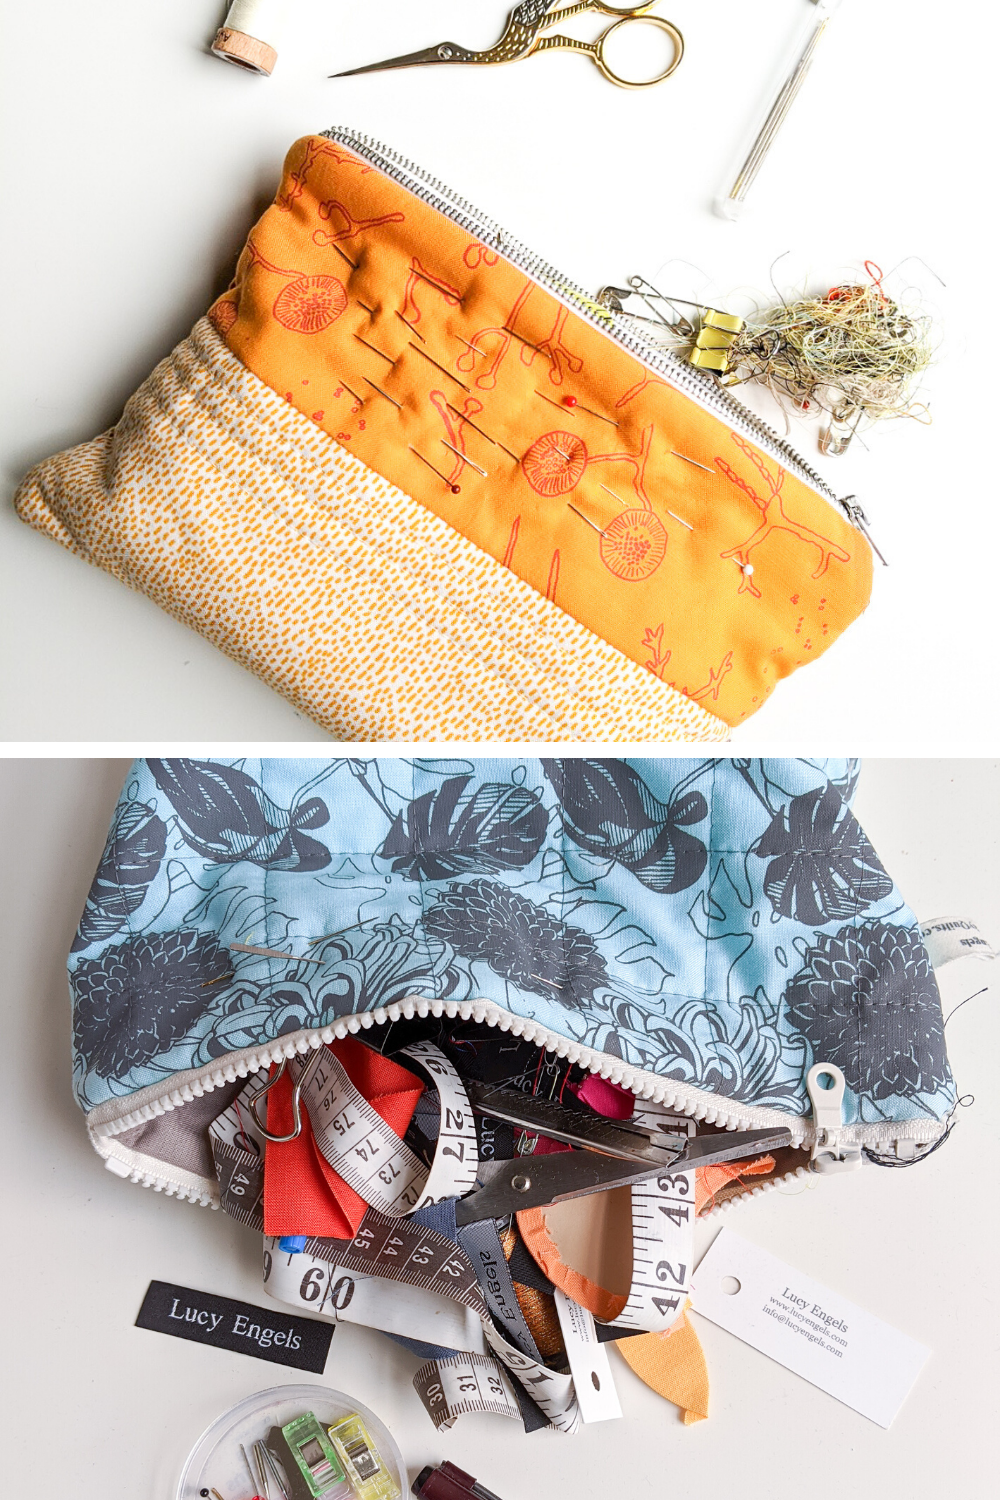 Custom zip pouches in yellow and blue with quilting notions spilling out | What's in your sewing bag Lucy Engels? | Shannon Fraser Designs #sewing